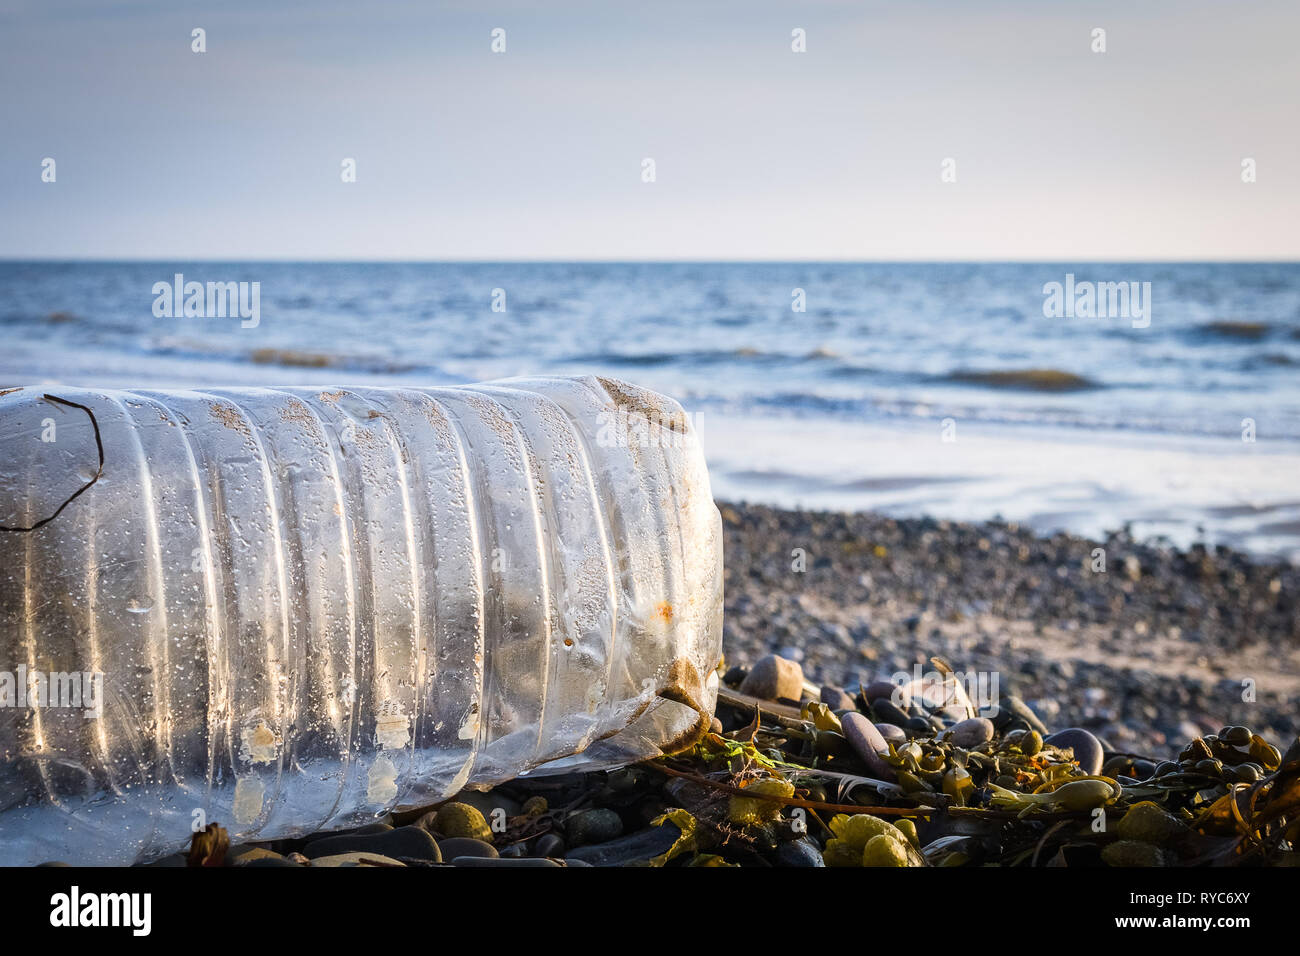 A washed-up plastic bottle and seaweed on a shingle beach with the ocean in the background and a low sun shining - Stock Image